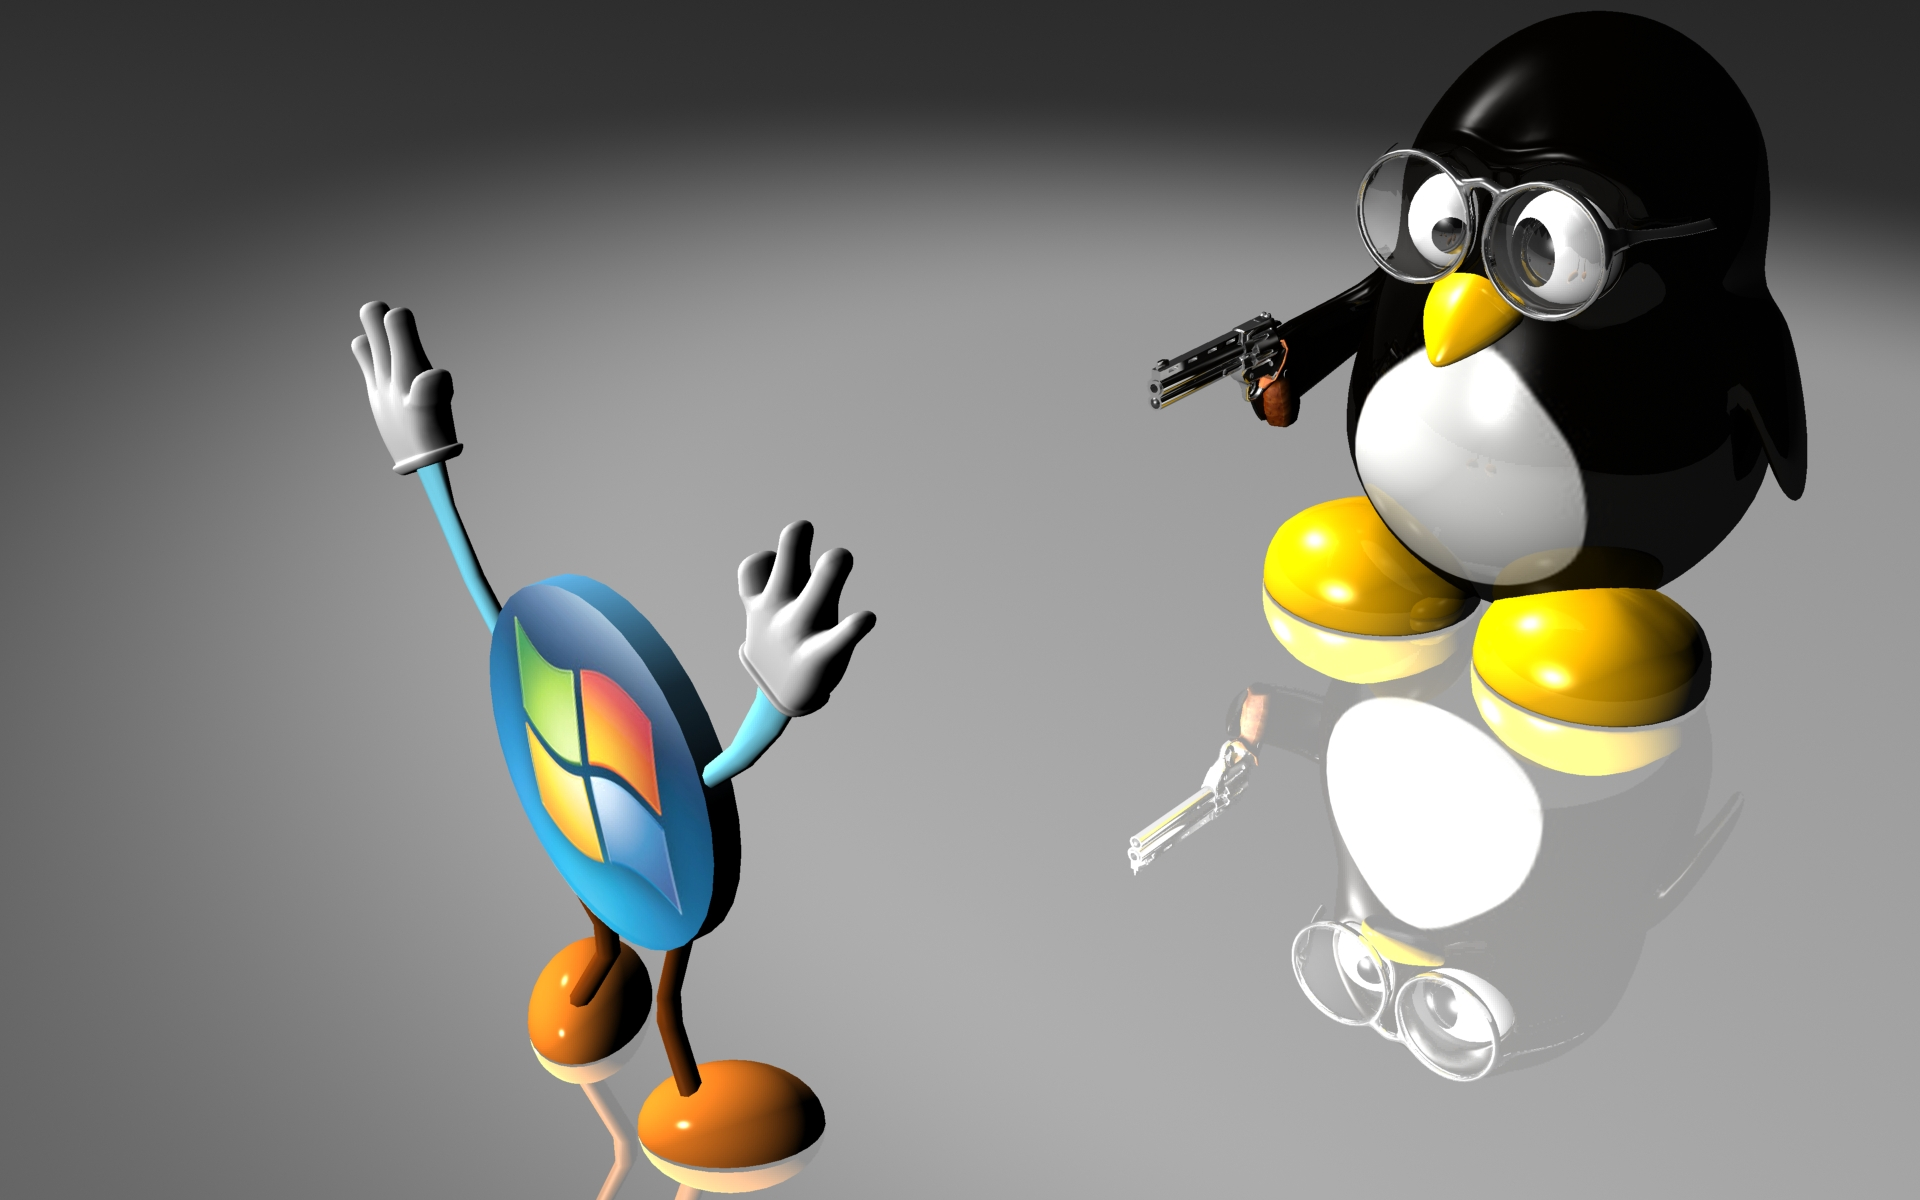 Technology - Linux  - Penguin - Trees - Save - Blue - Fight - Gun - Humor - Products - Windows Wallpaper